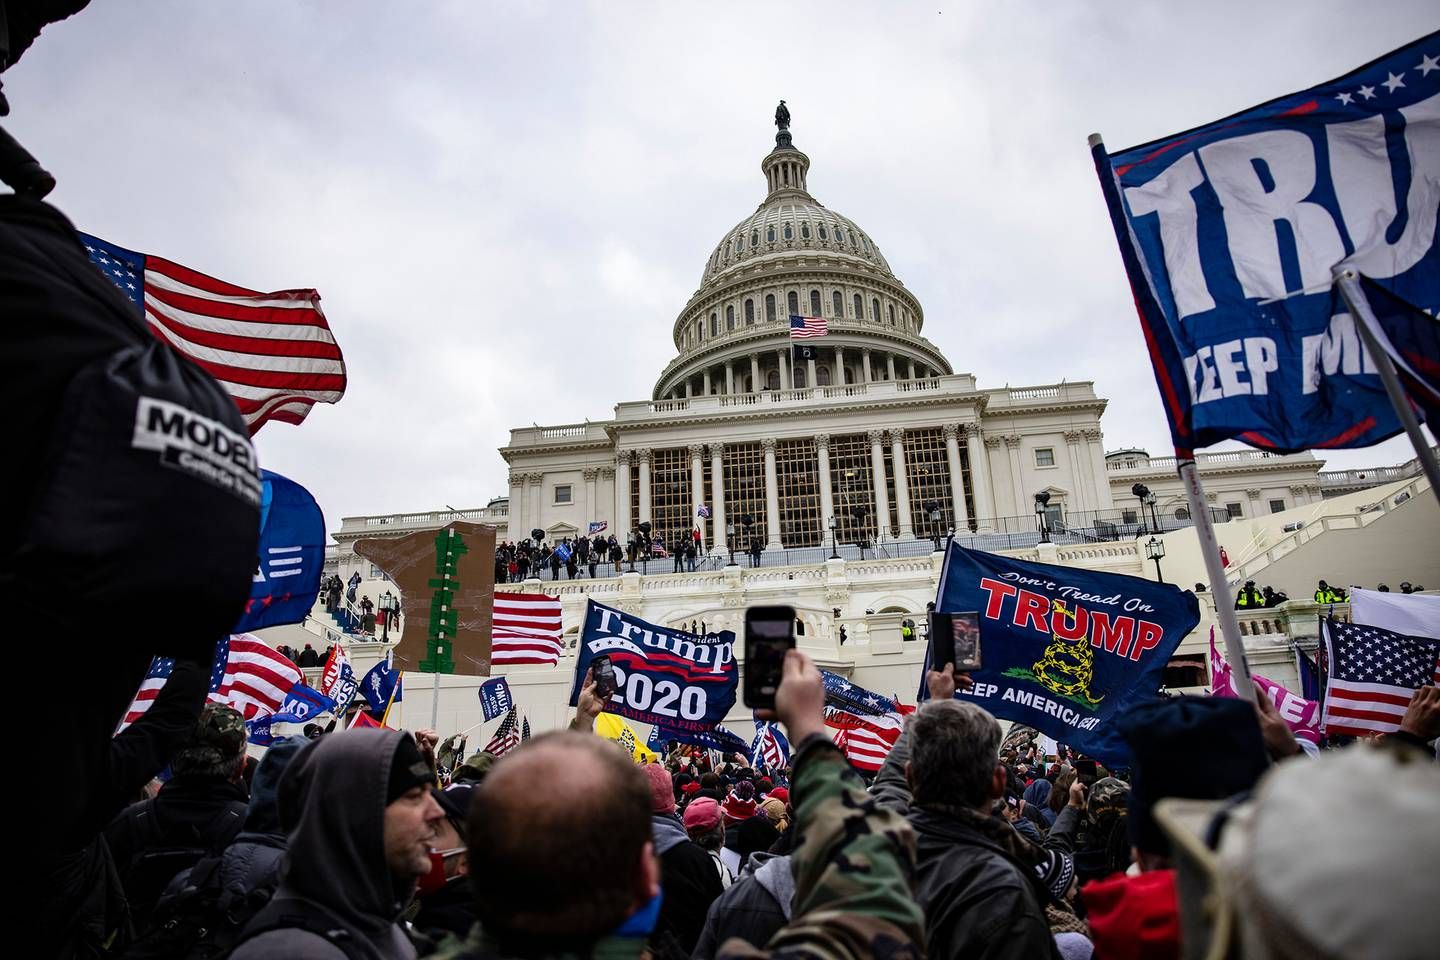 Pro-Trump protesters gather in front of the US Capitol Building on January 6 before a mob stormed the Capitol, breaking windows and clashing with police officers. Photo / Getty Images